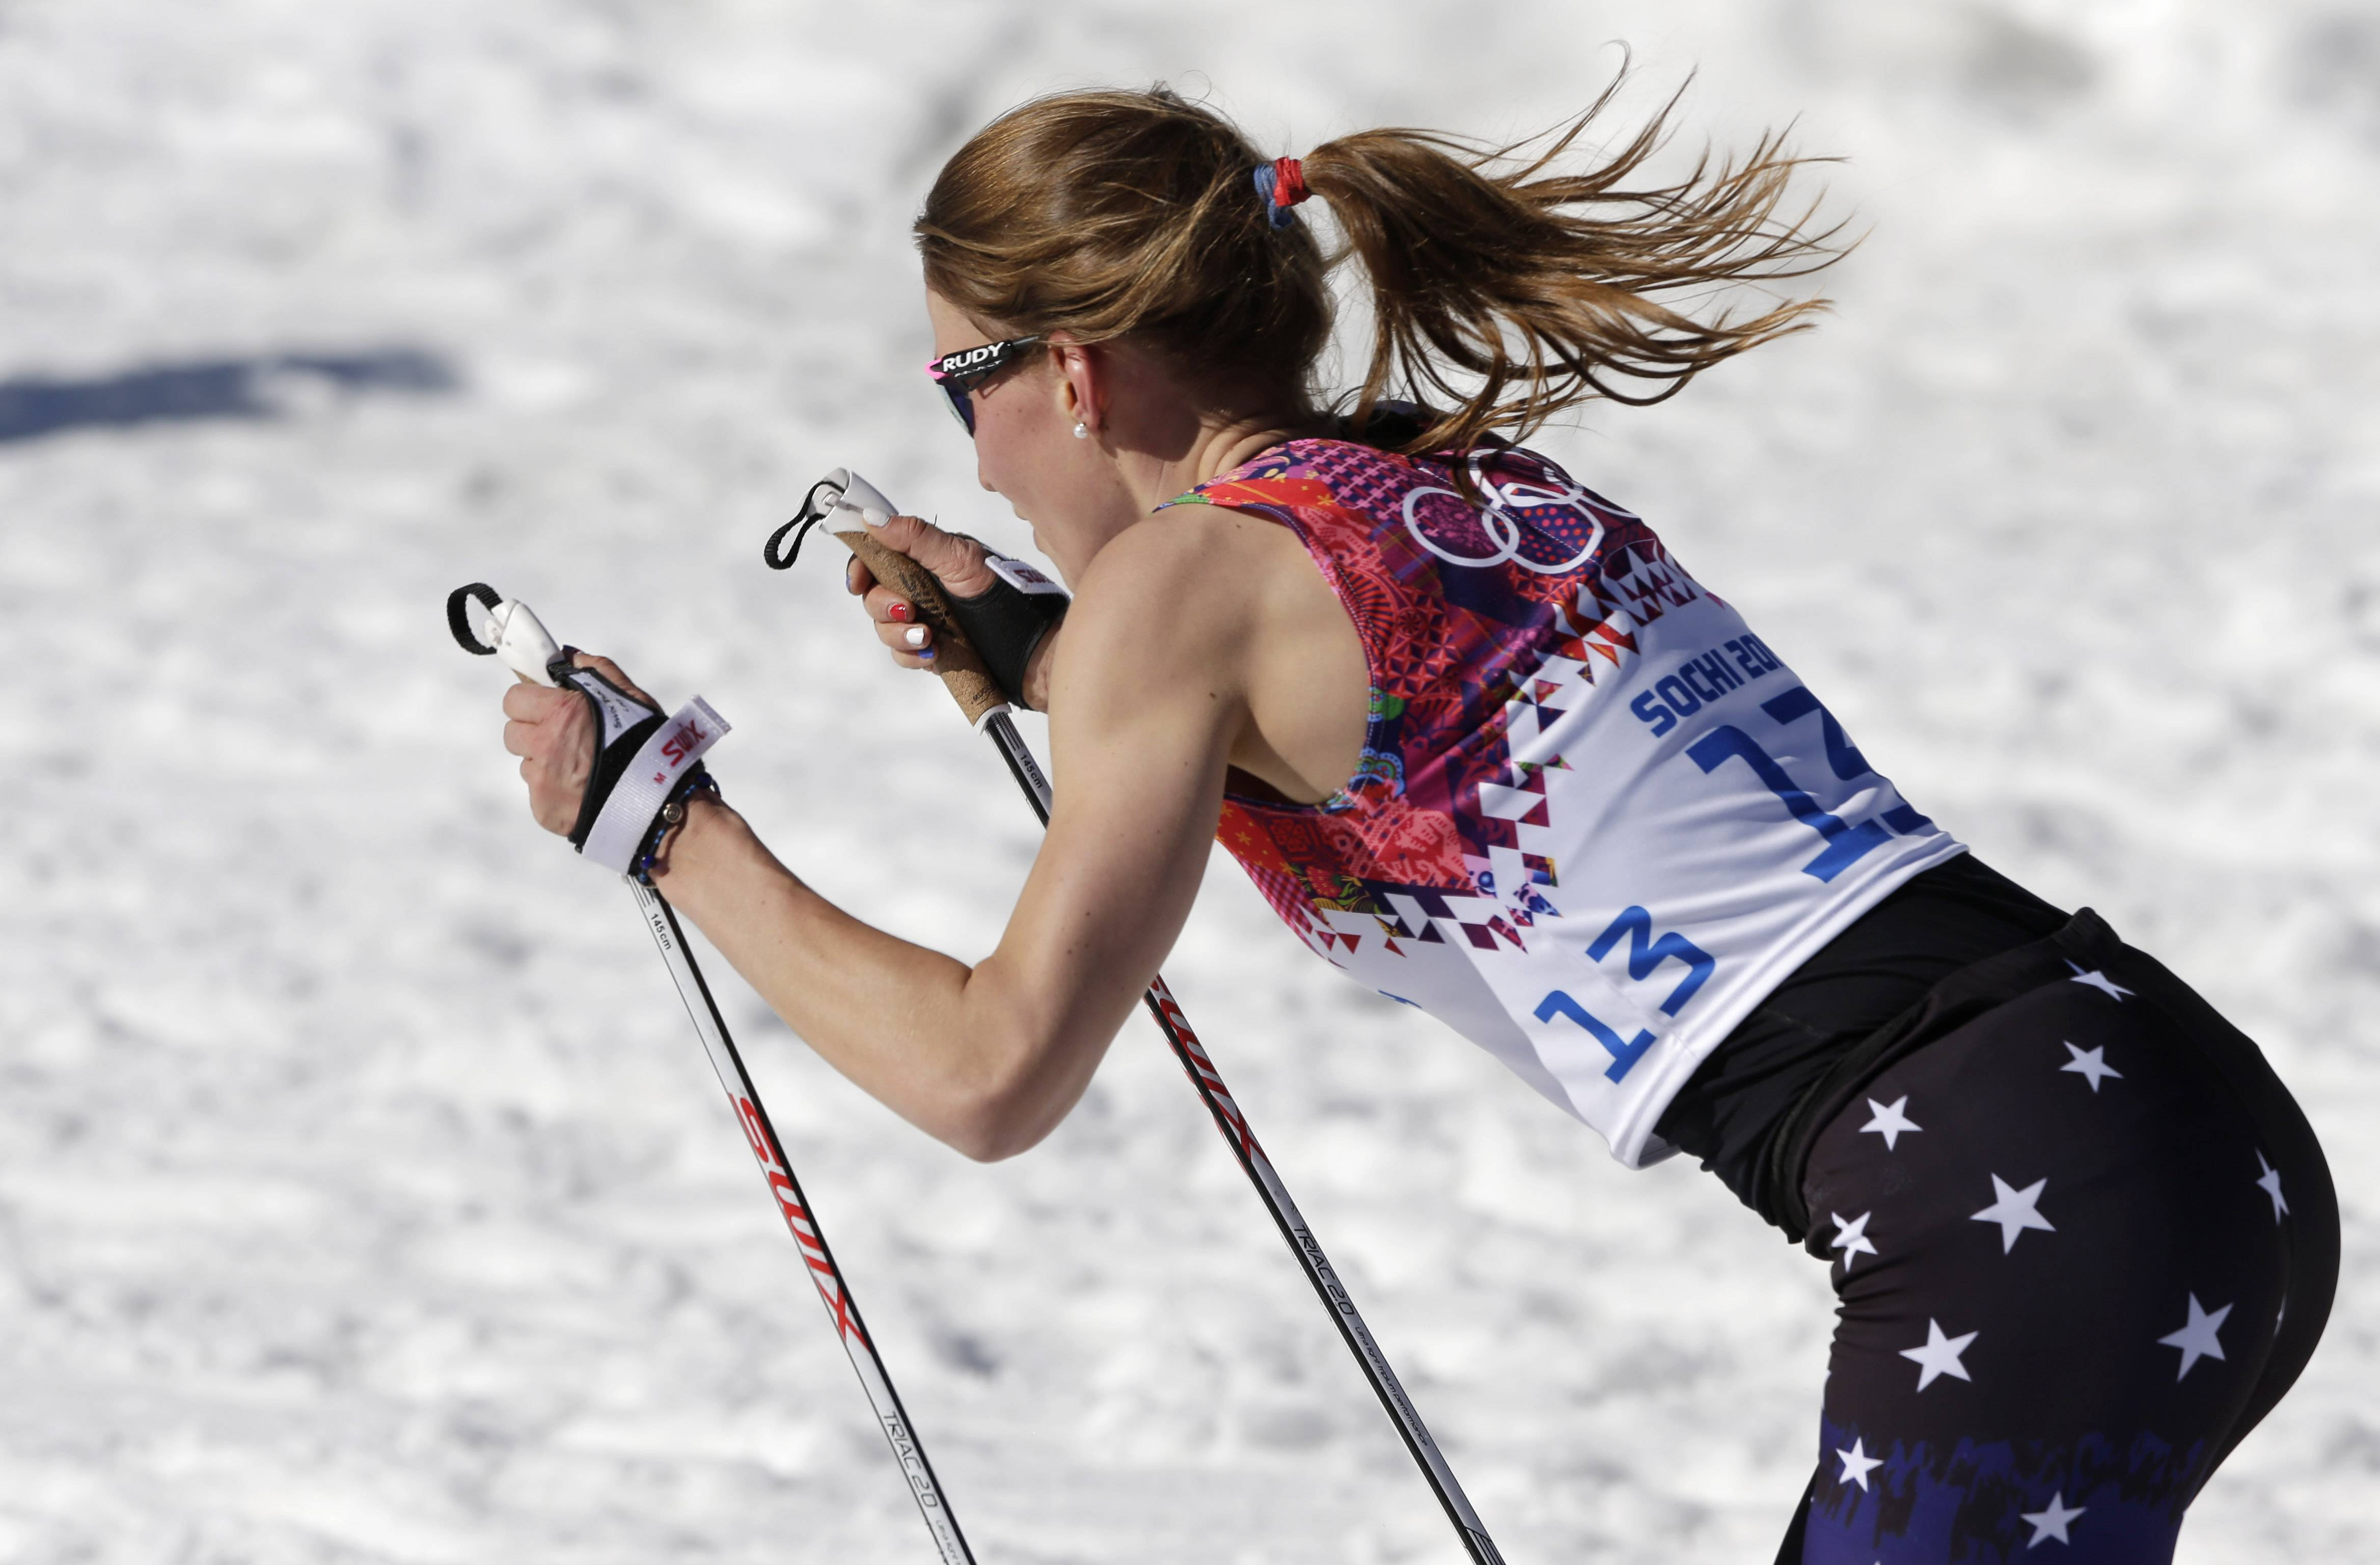 United States cross country skier Sophie Caldwell skis with a sleeveless top Thursday during the women's 10K classical-style race at the 2014 Winter Olympics in Krasnaya Polyana, Russia.